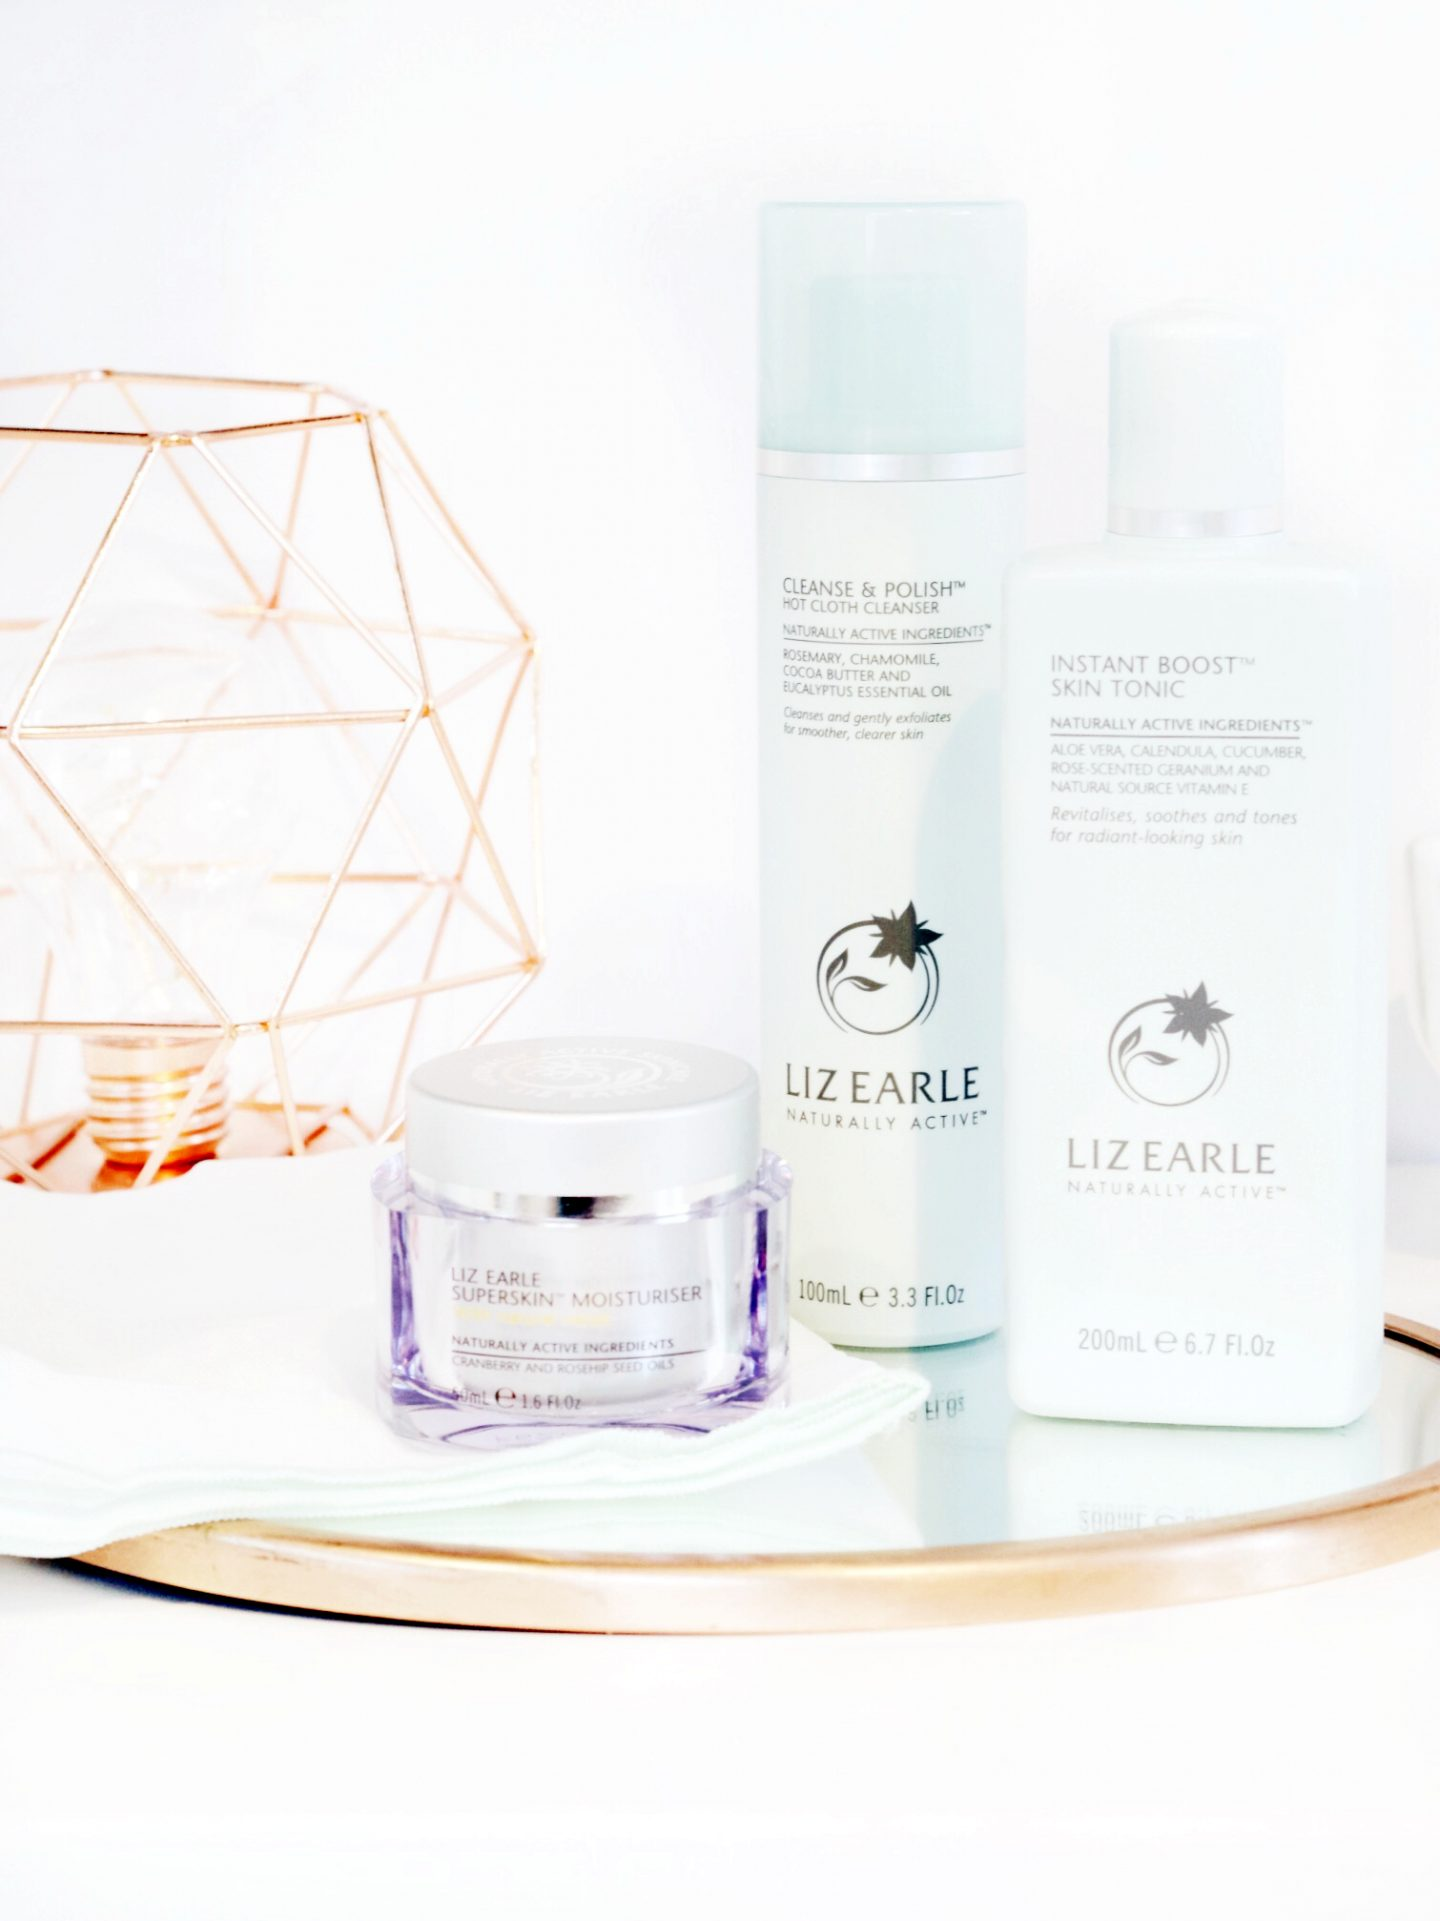 Liz Earle Superskin Bundle